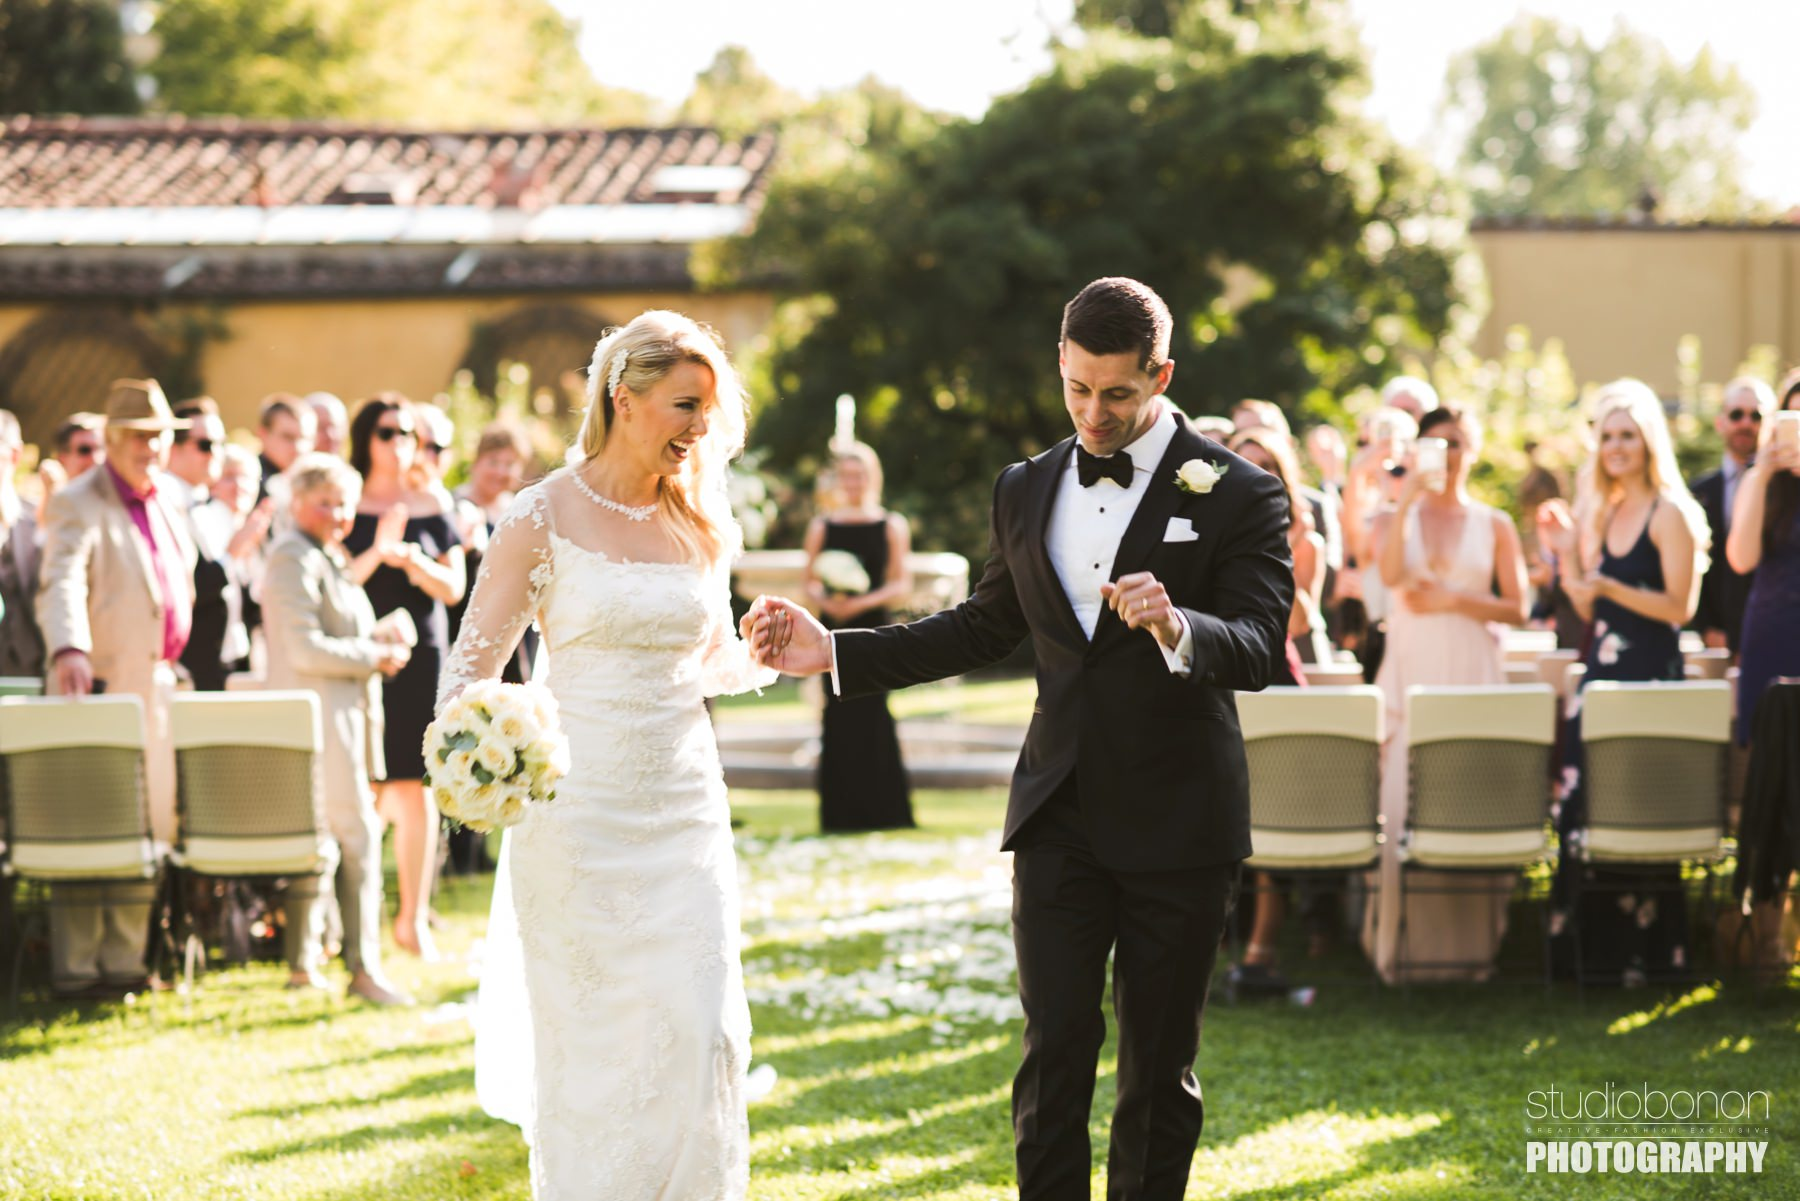 Bride and groom are just married! Elegant destination wedding in Florence